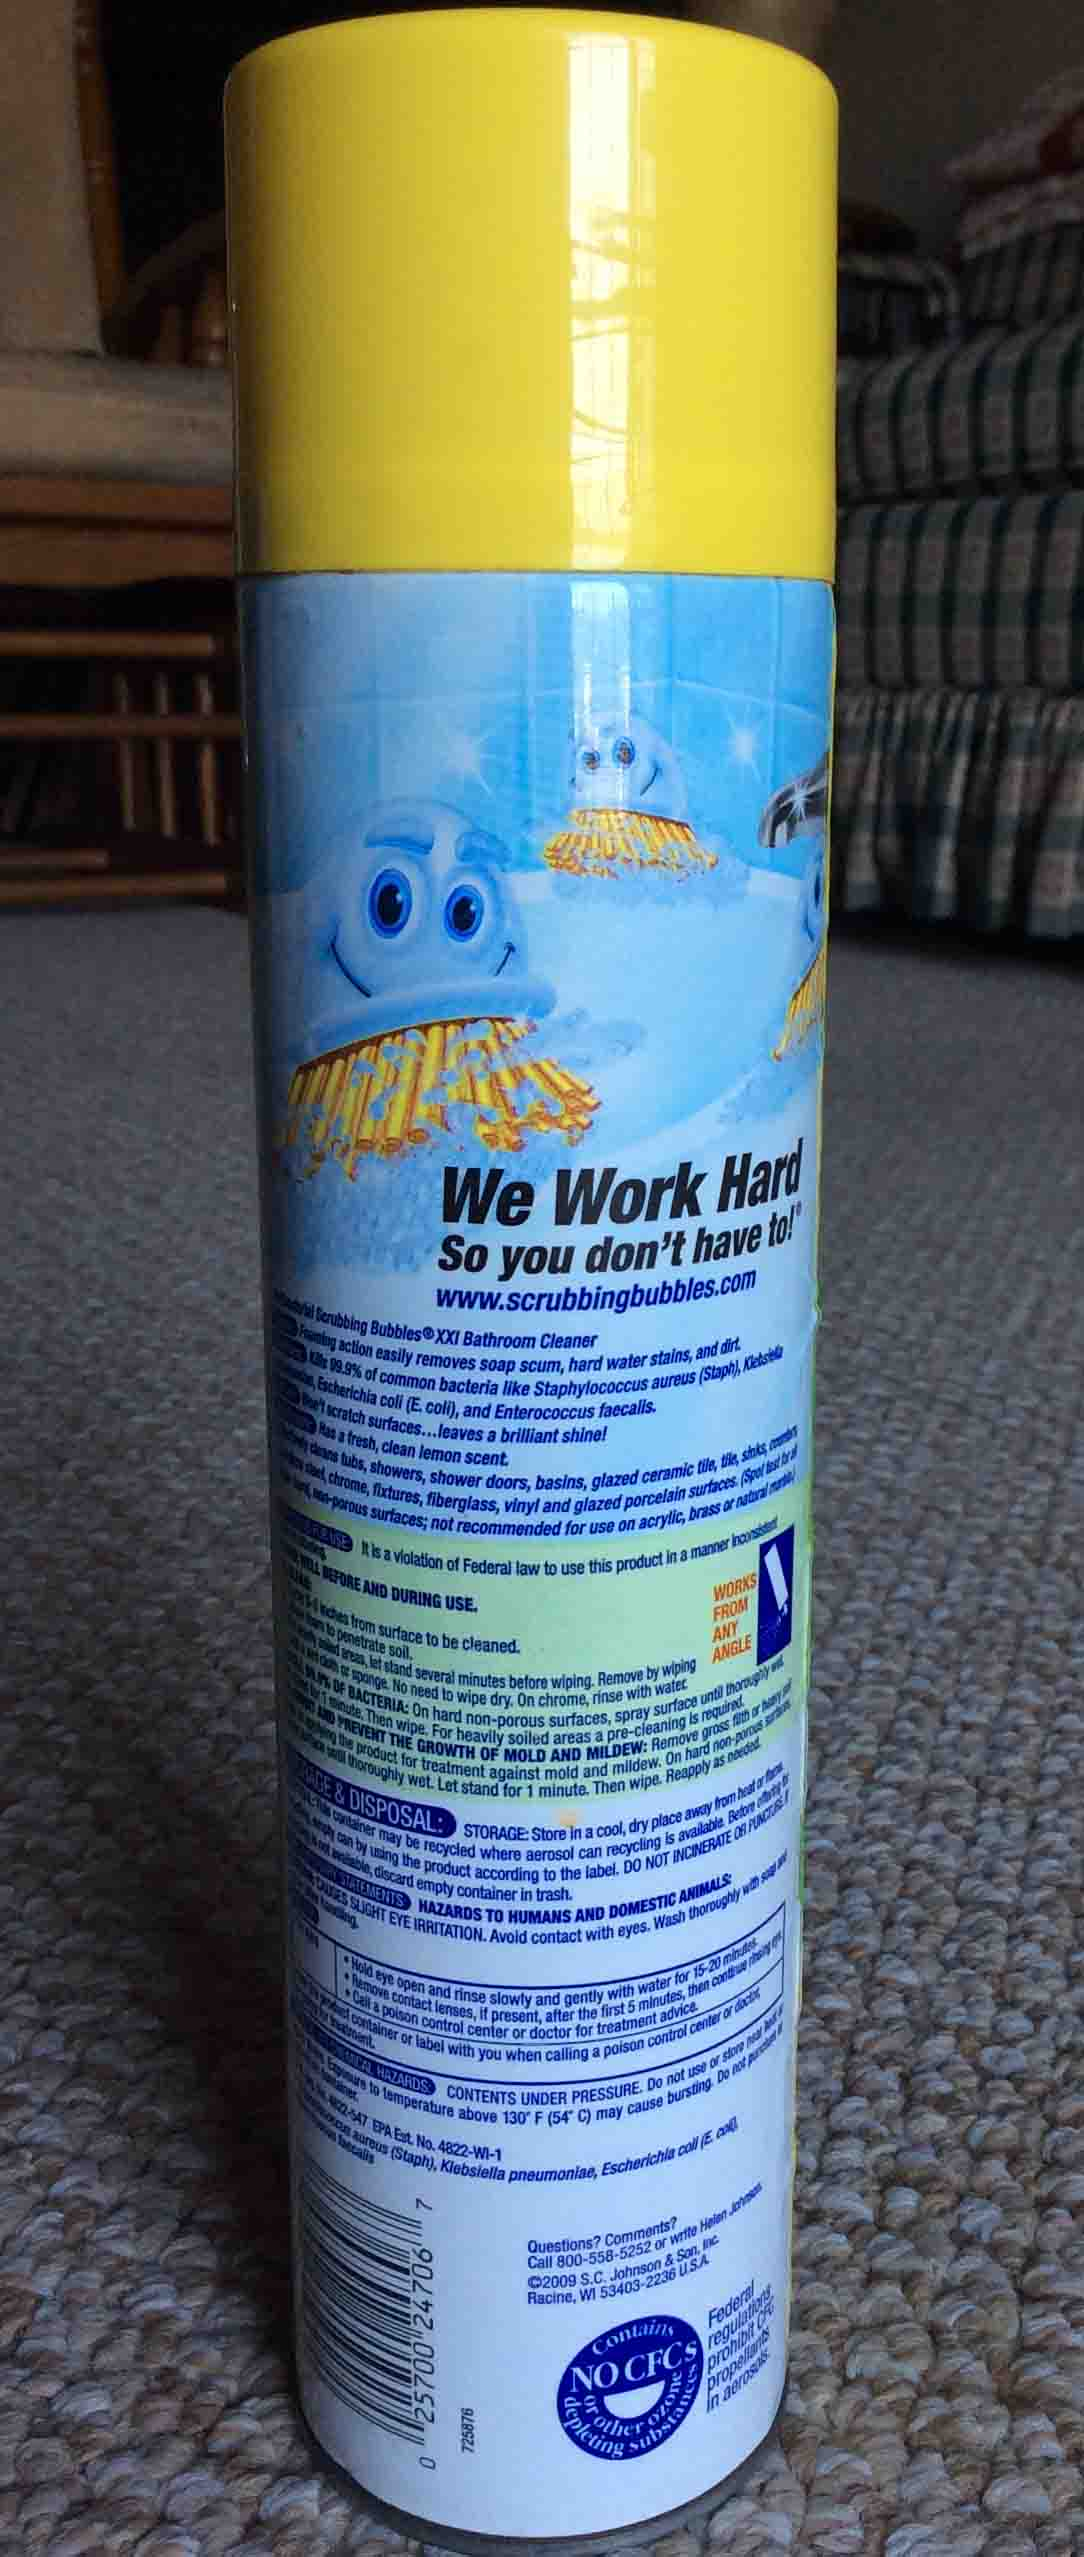 Picture Of The Back Of The 25 Ounce Can Of SC Johnson Scrubbing Bubbles  Anti Bacterial